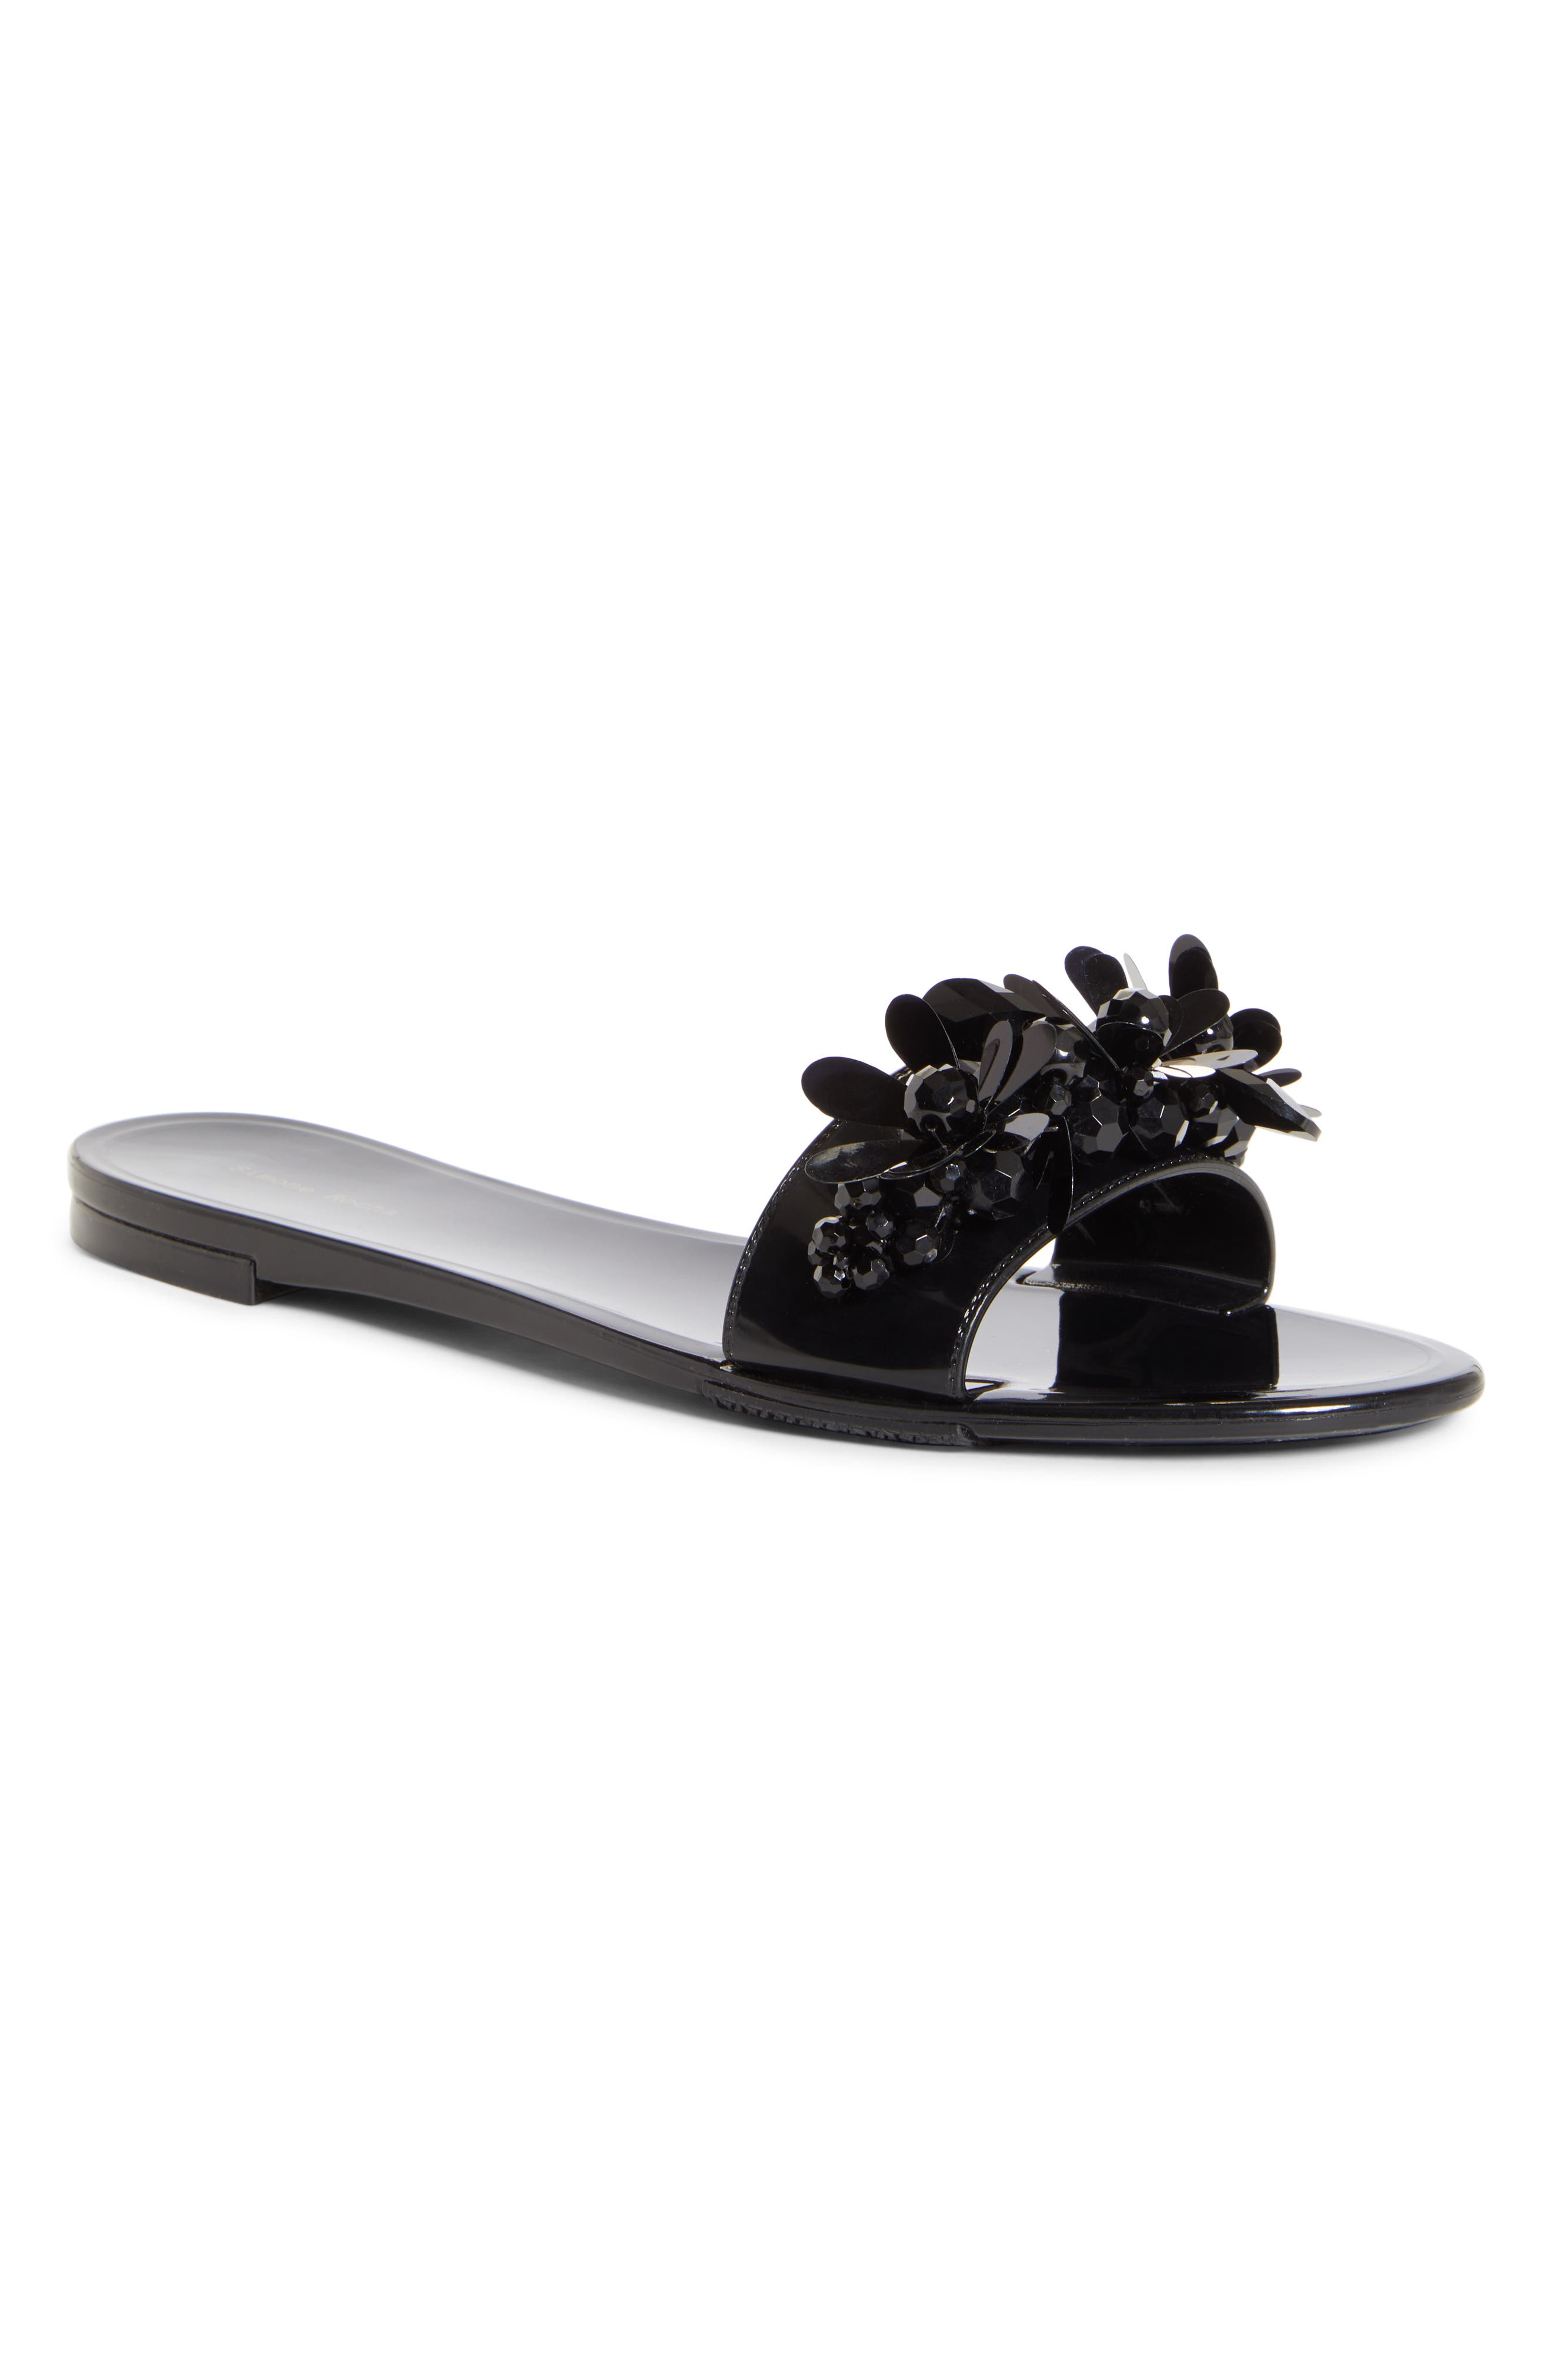 SIMONE ROCHA,                             Embellished Jelly Slide Sandal,                             Main thumbnail 1, color,                             BLACK/ JET